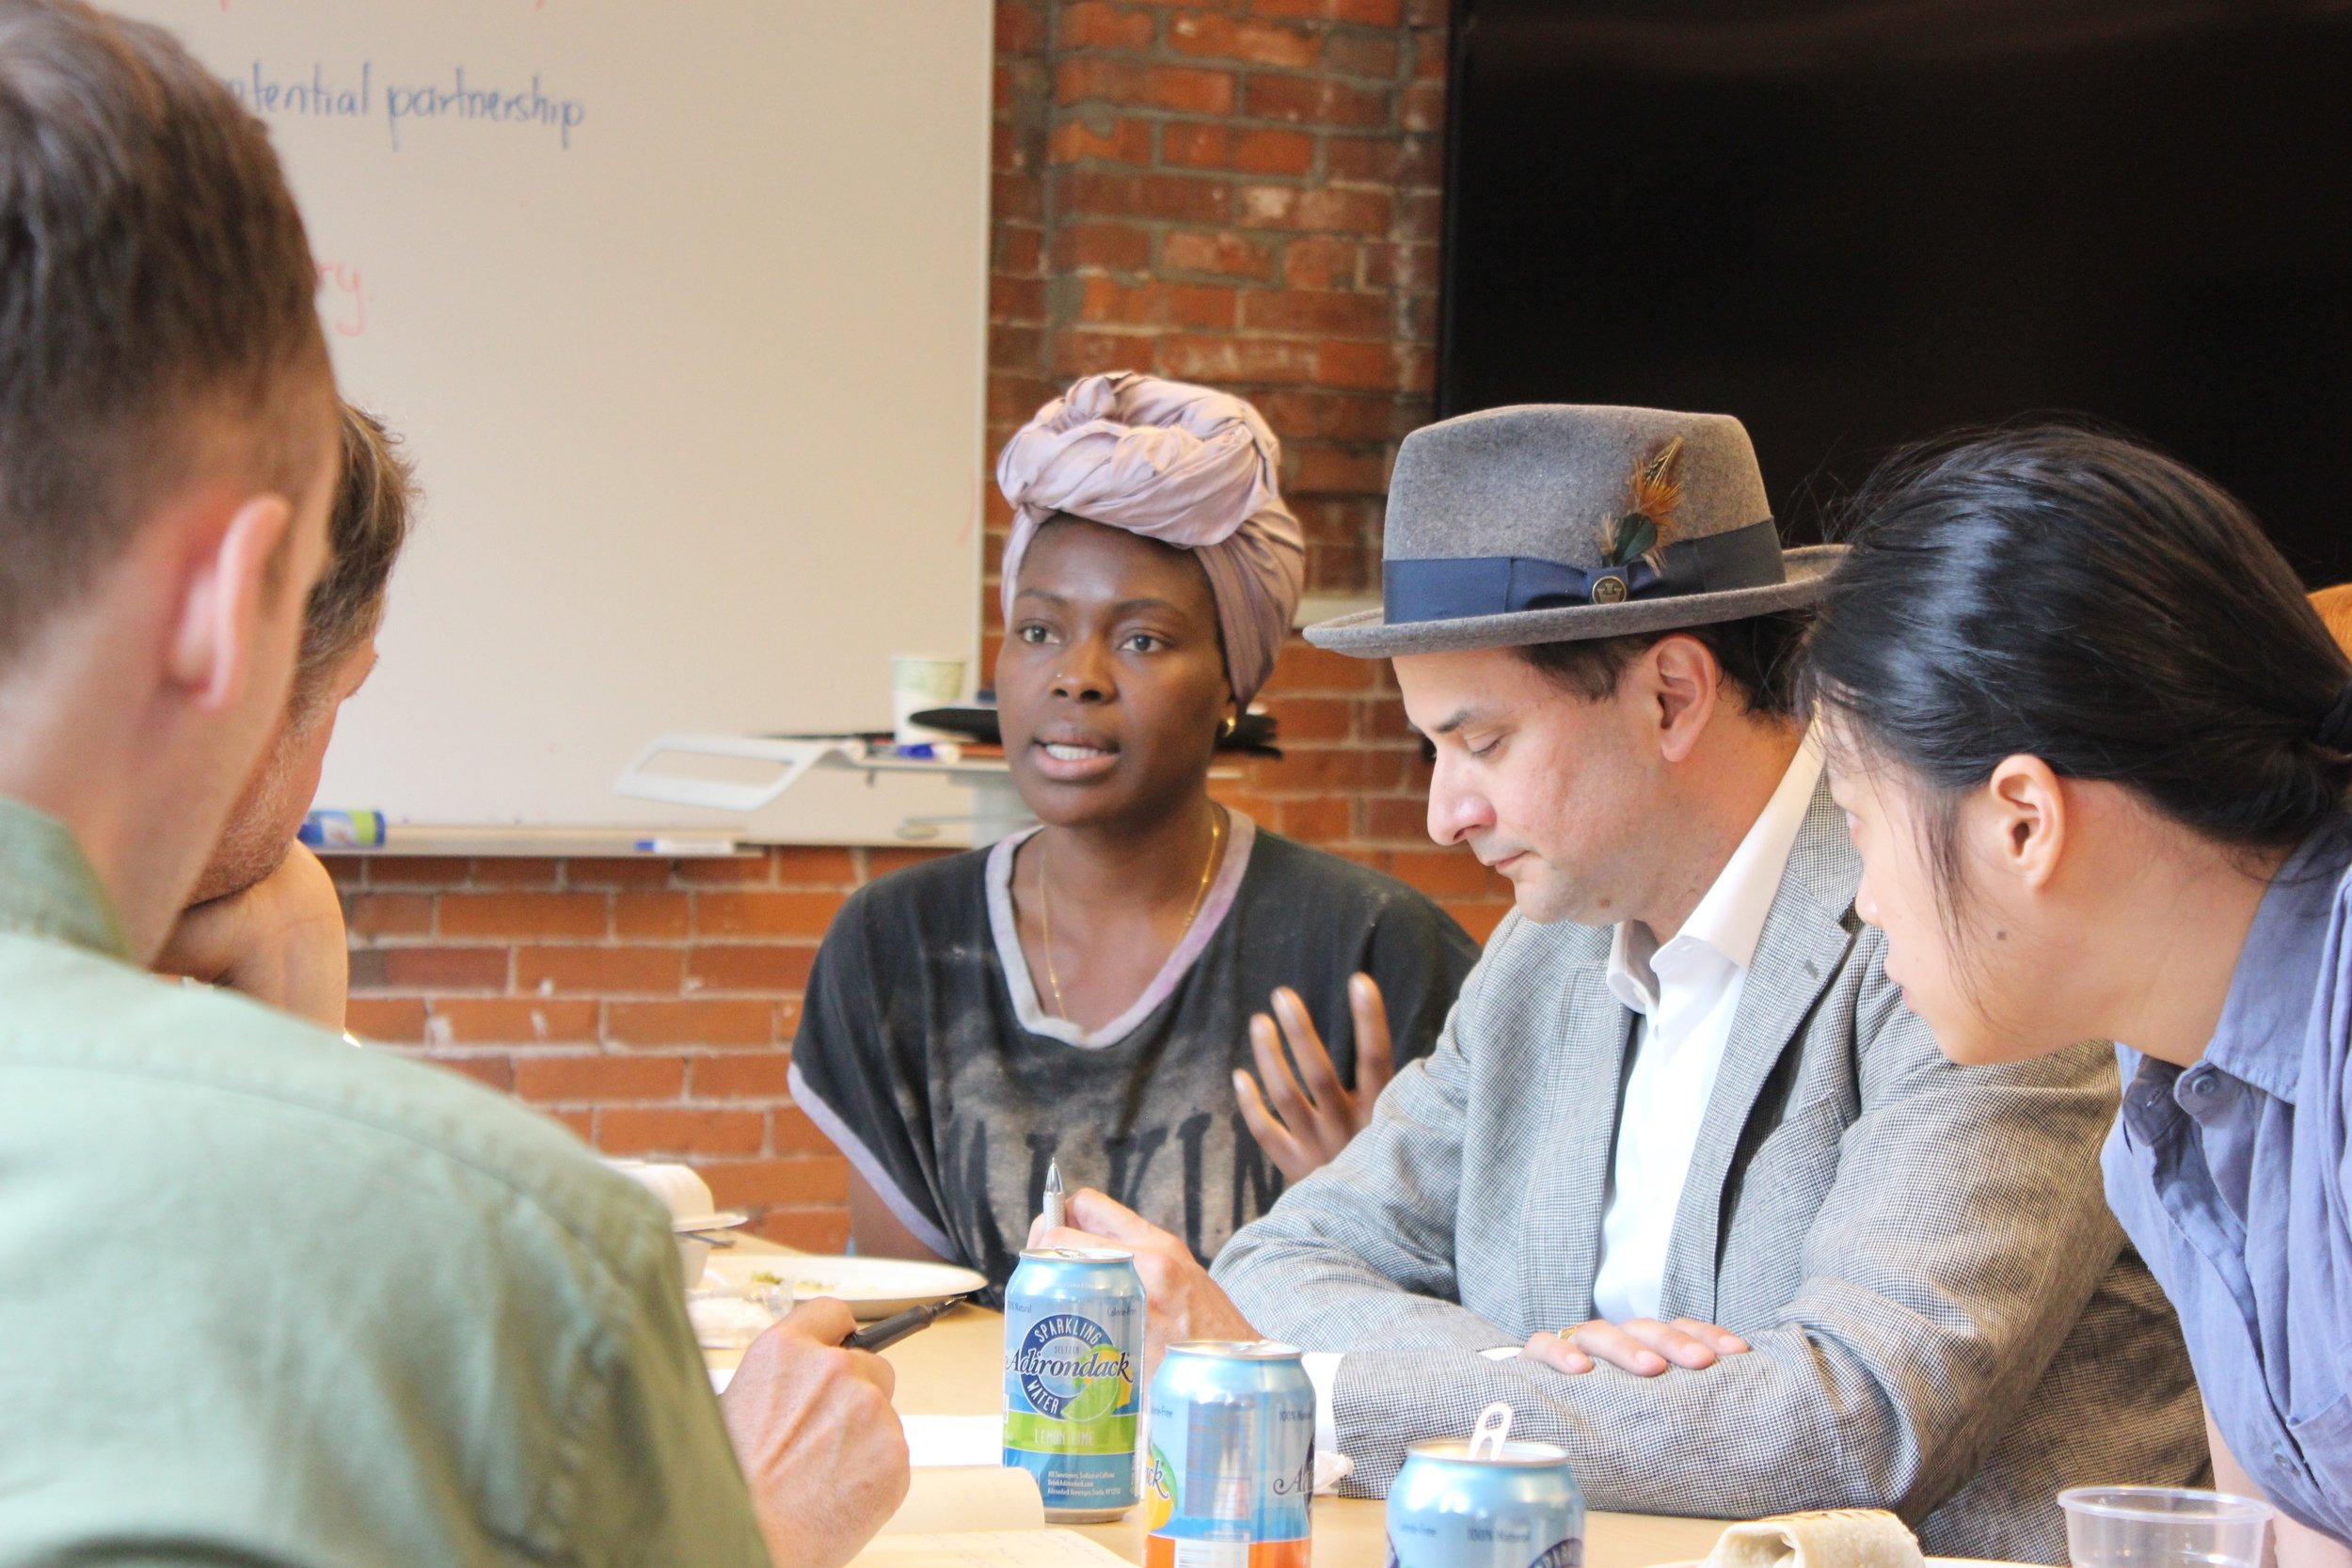 Siyonbola, center, speaks during a lunch with mentors.